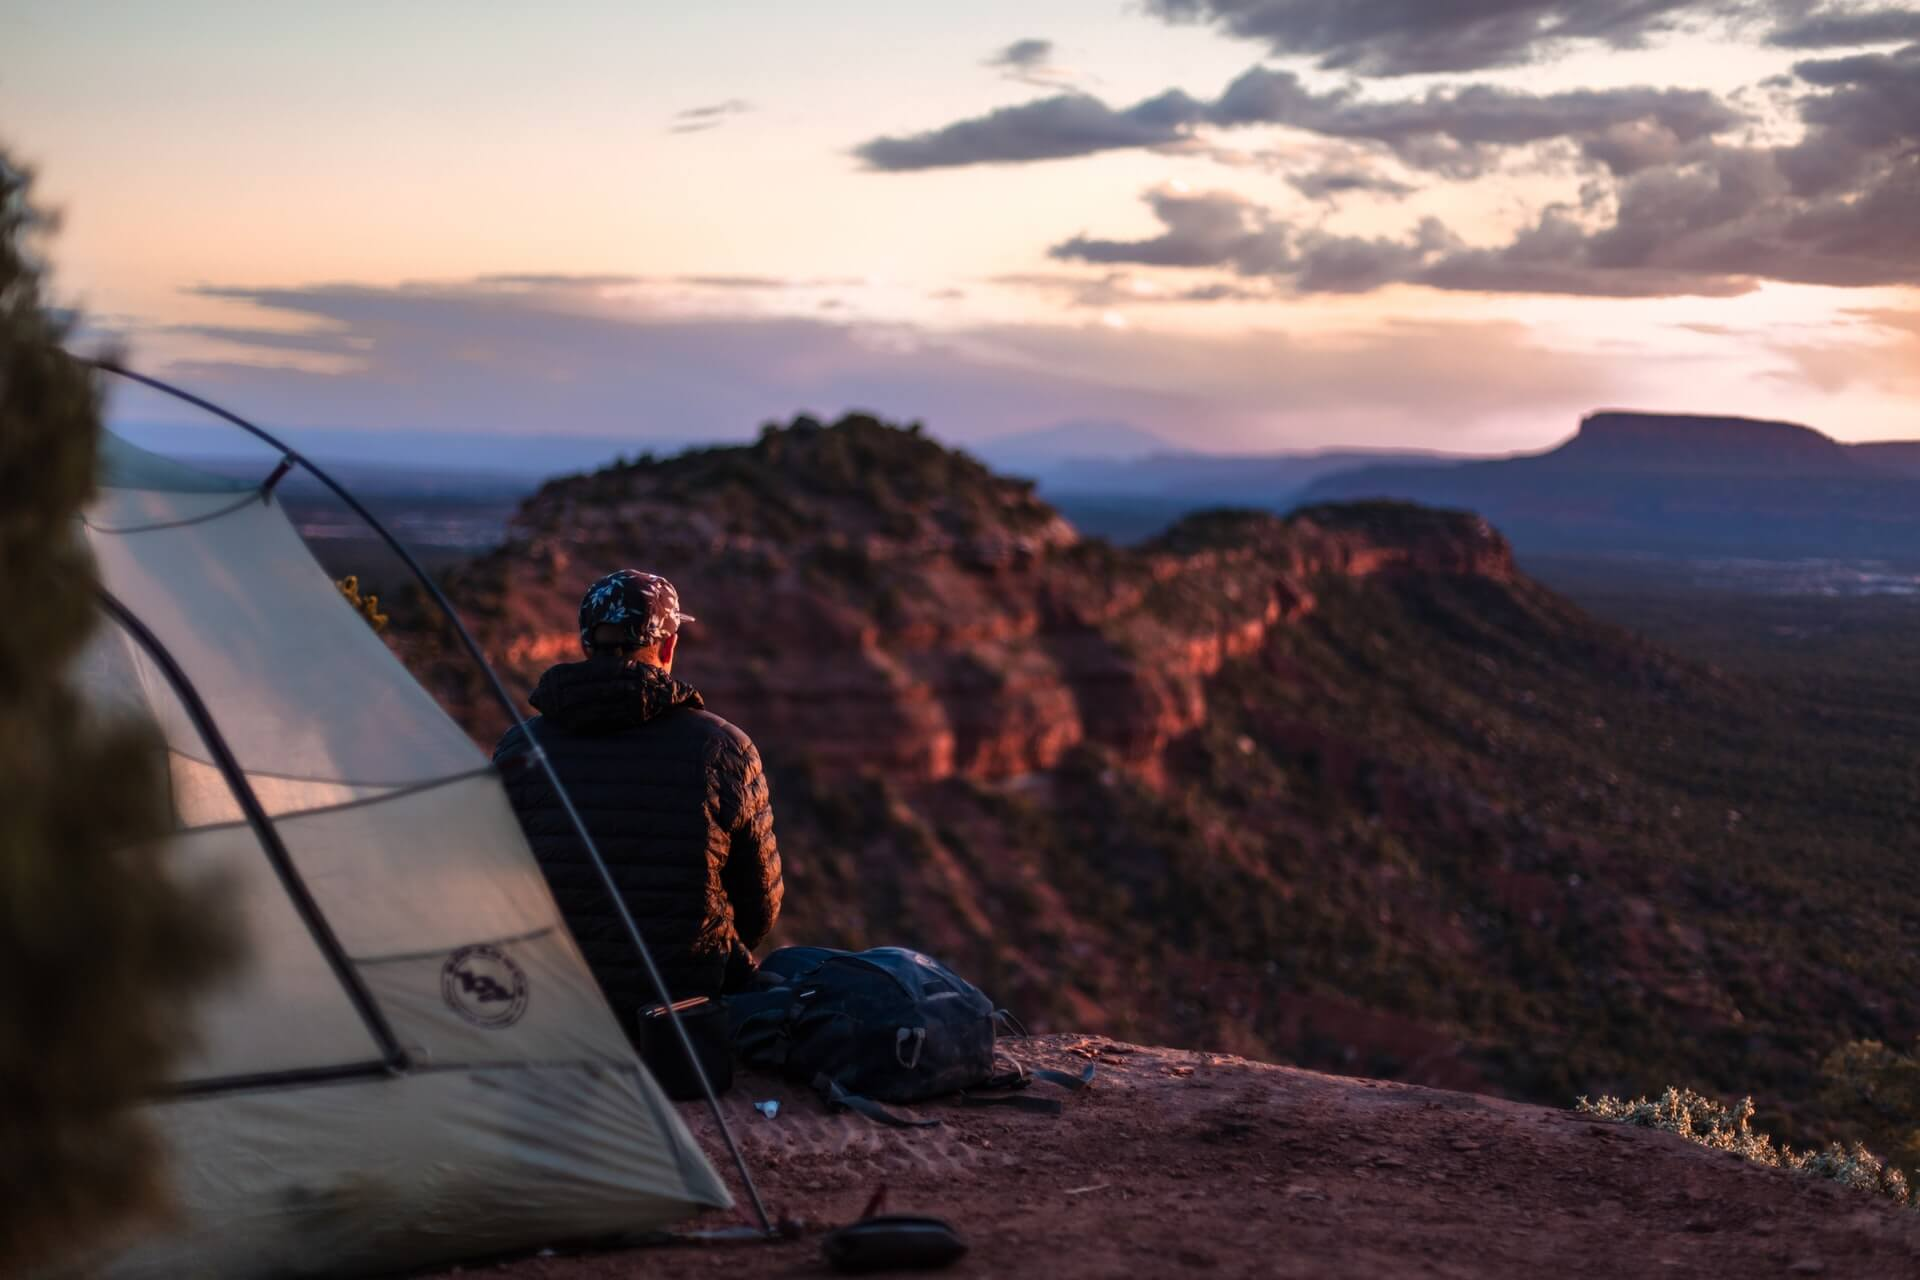 The Best Camping Pillows for Backpacking In 2021